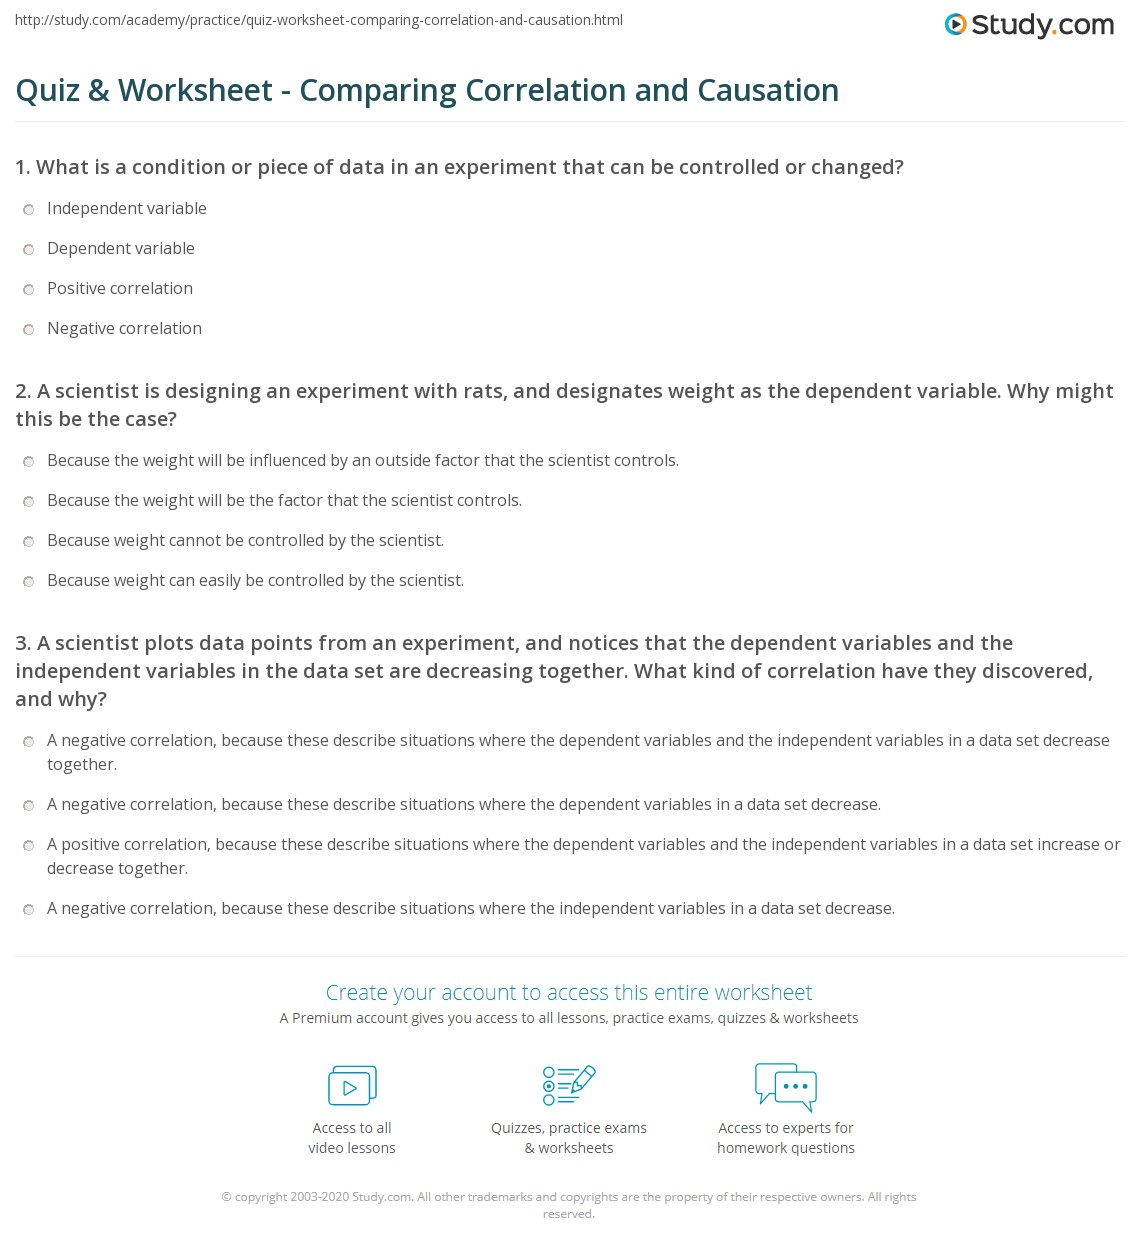 Aldiablosus  Scenic Quiz Amp Worksheet  Comparing Correlation And Causation  Studycom With Outstanding Print Correlation Vs Causation Differences Amp Definition Worksheet With Amazing Division Worksheets Printable Also Islamic Worksheets In Addition Linear Motion Worksheet And Hard And Soft C Worksheets As Well As Math Worksheets Kindergarten Free Additionally Composite Figures Worksheet Answers From Studycom With Aldiablosus  Outstanding Quiz Amp Worksheet  Comparing Correlation And Causation  Studycom With Amazing Print Correlation Vs Causation Differences Amp Definition Worksheet And Scenic Division Worksheets Printable Also Islamic Worksheets In Addition Linear Motion Worksheet From Studycom